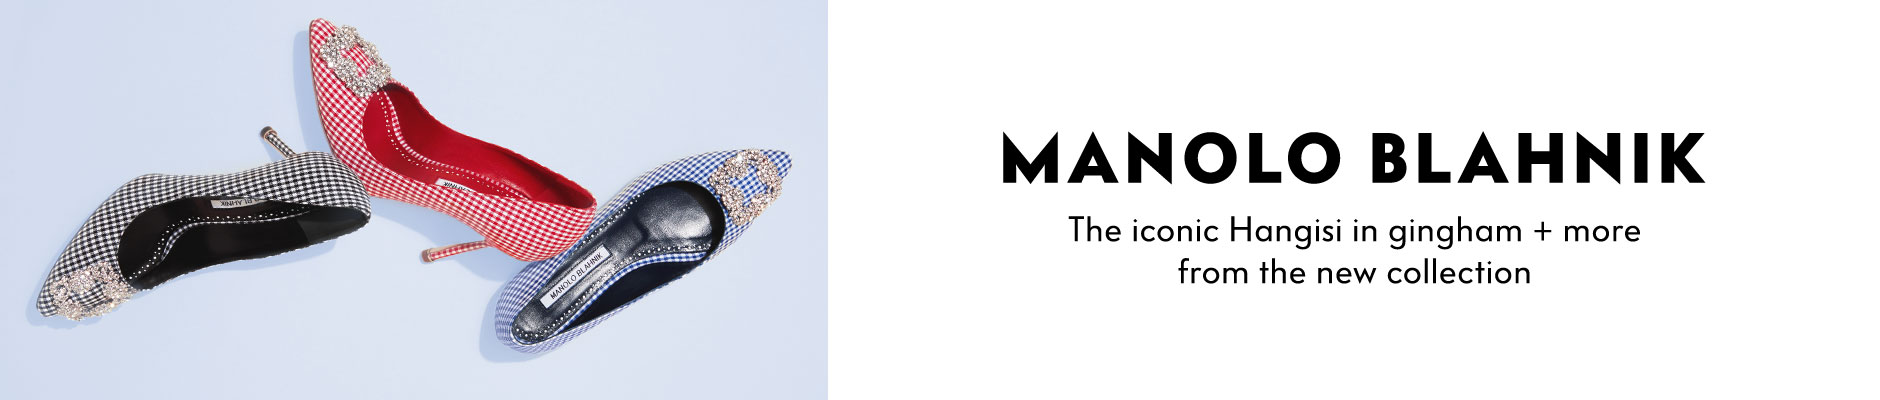 Manolo Blahnik - The iconic Hangisi in gingham + more from the new collection